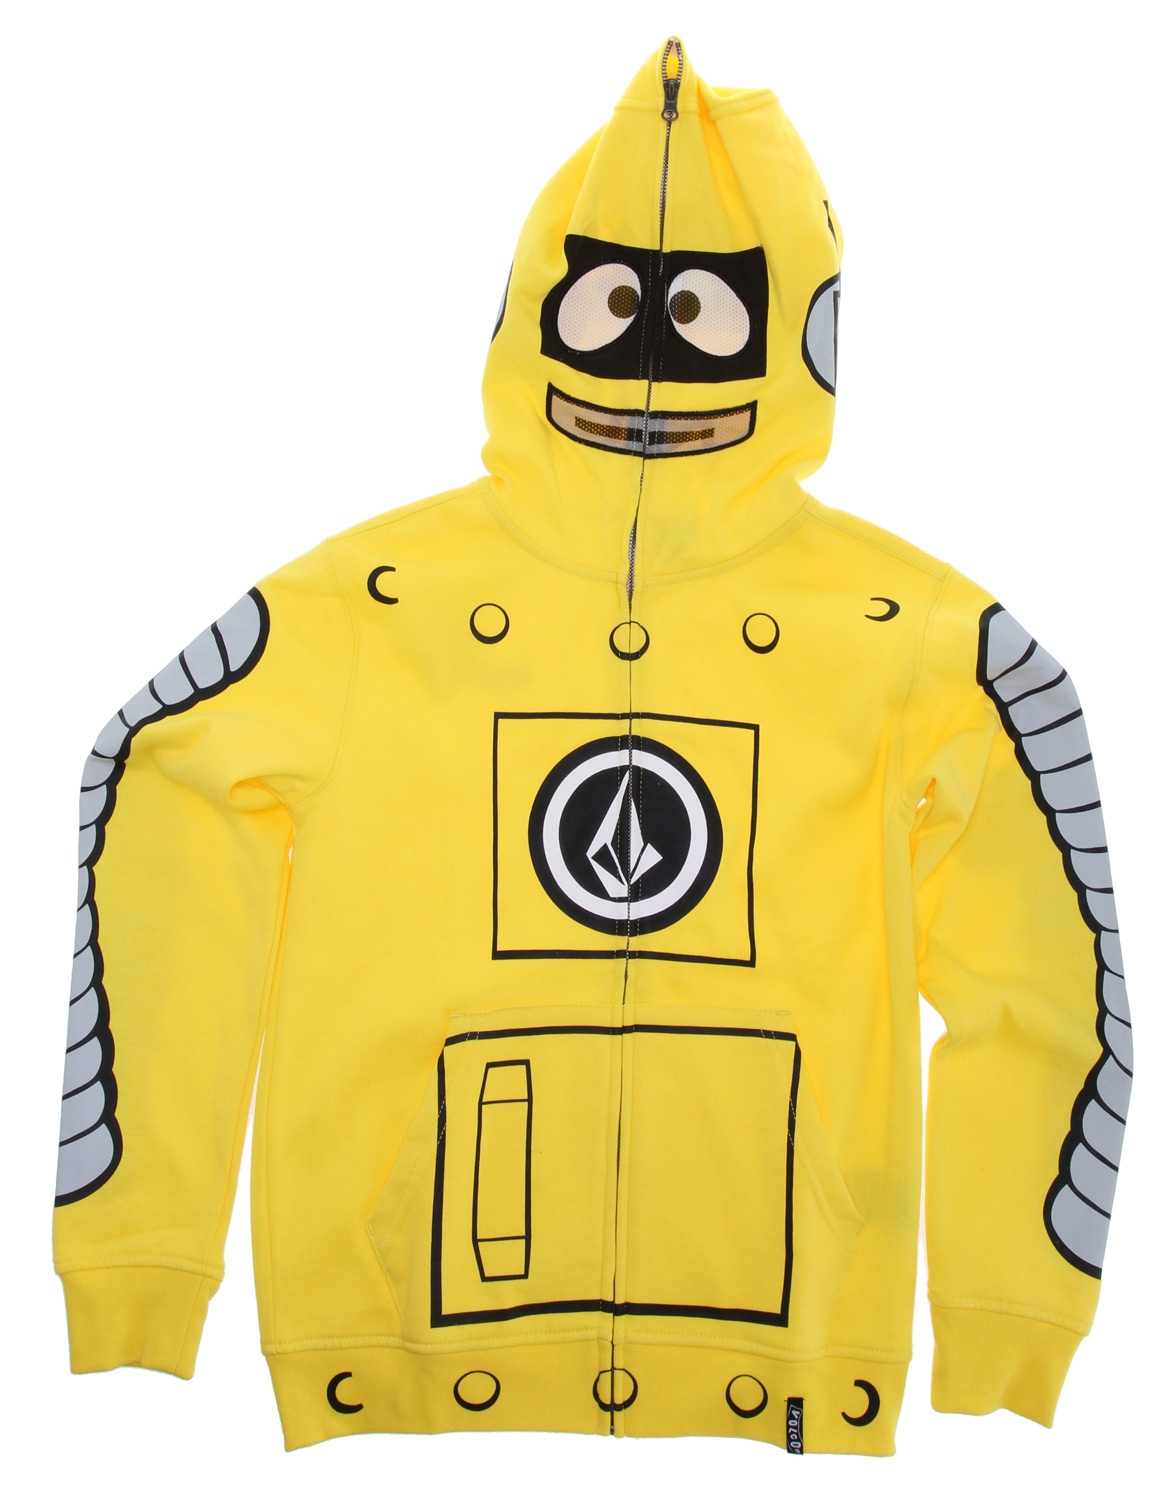 Surf Key Features of the Volcom Yo Gabba Gabba Full Zip Hoodie: Full face zip hood, little youth is 1/2 face zip mesh mouth and mesh eyes, little youth has drop down mesh mask Featuring Yo Gabba Gabba characters Pre shrunk, Slim fit 60% cotton/40% polyester fleece 208g - $55.95